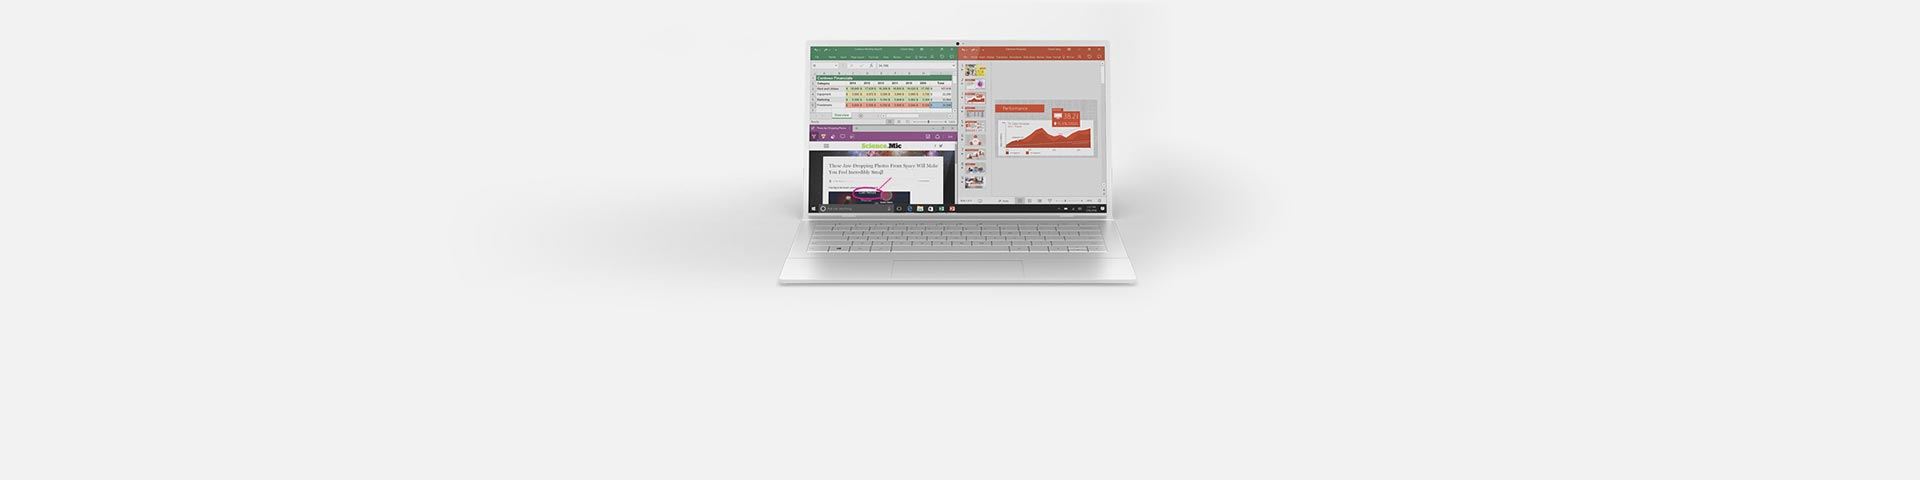 A laptop with Office apps on the screen